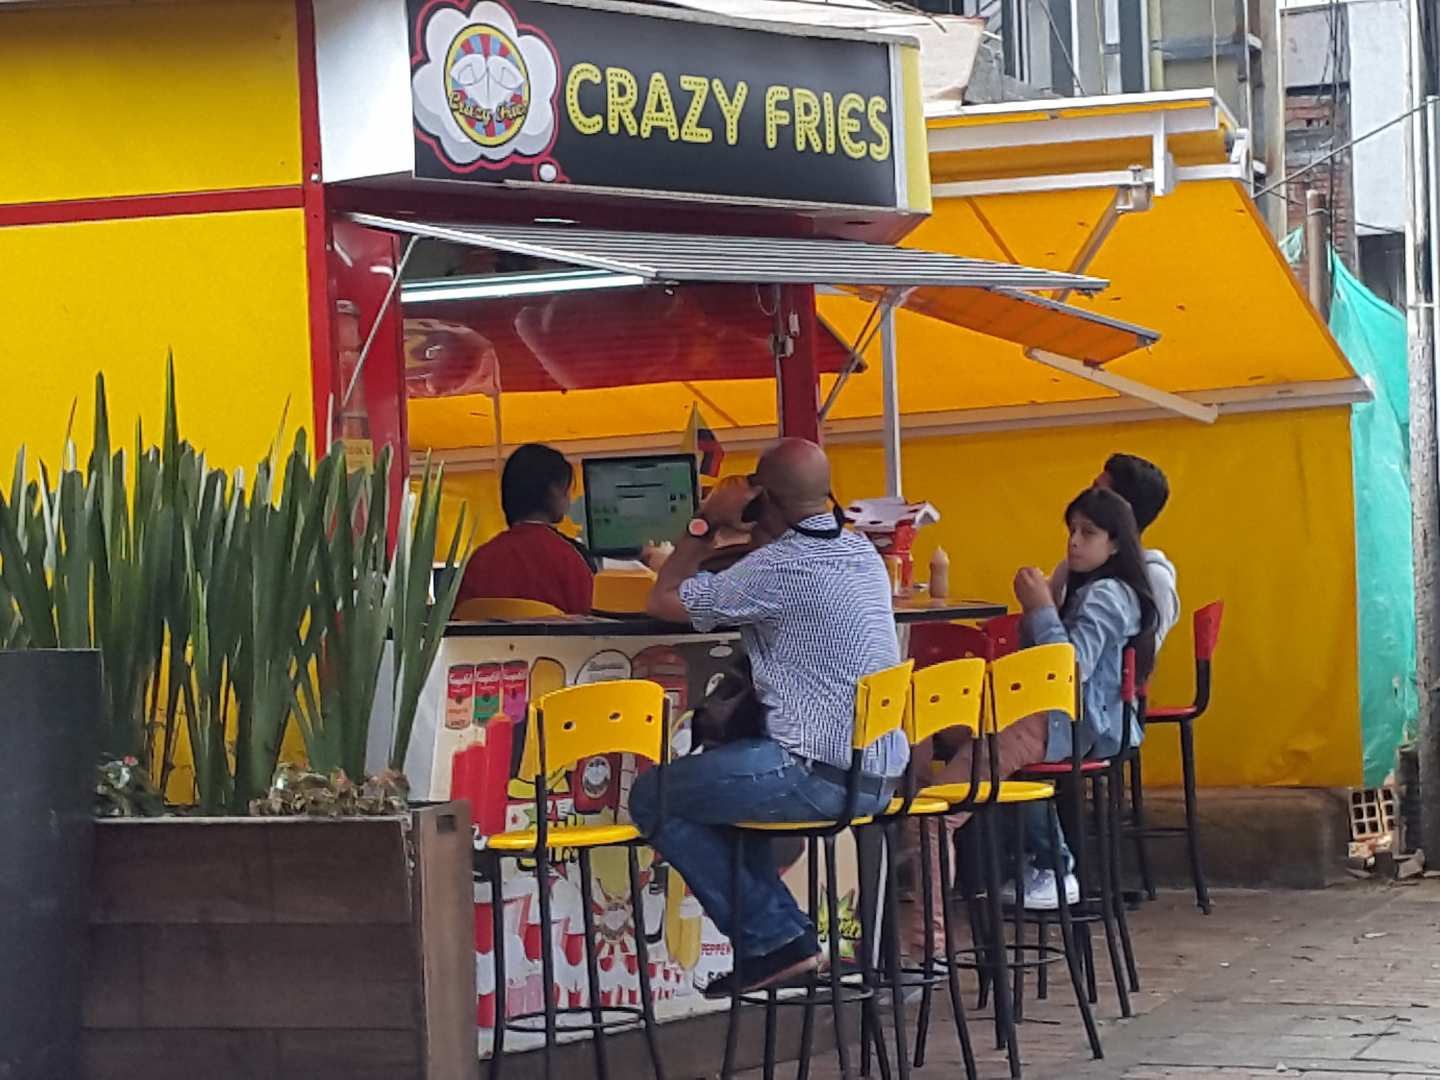 Crazy Fries